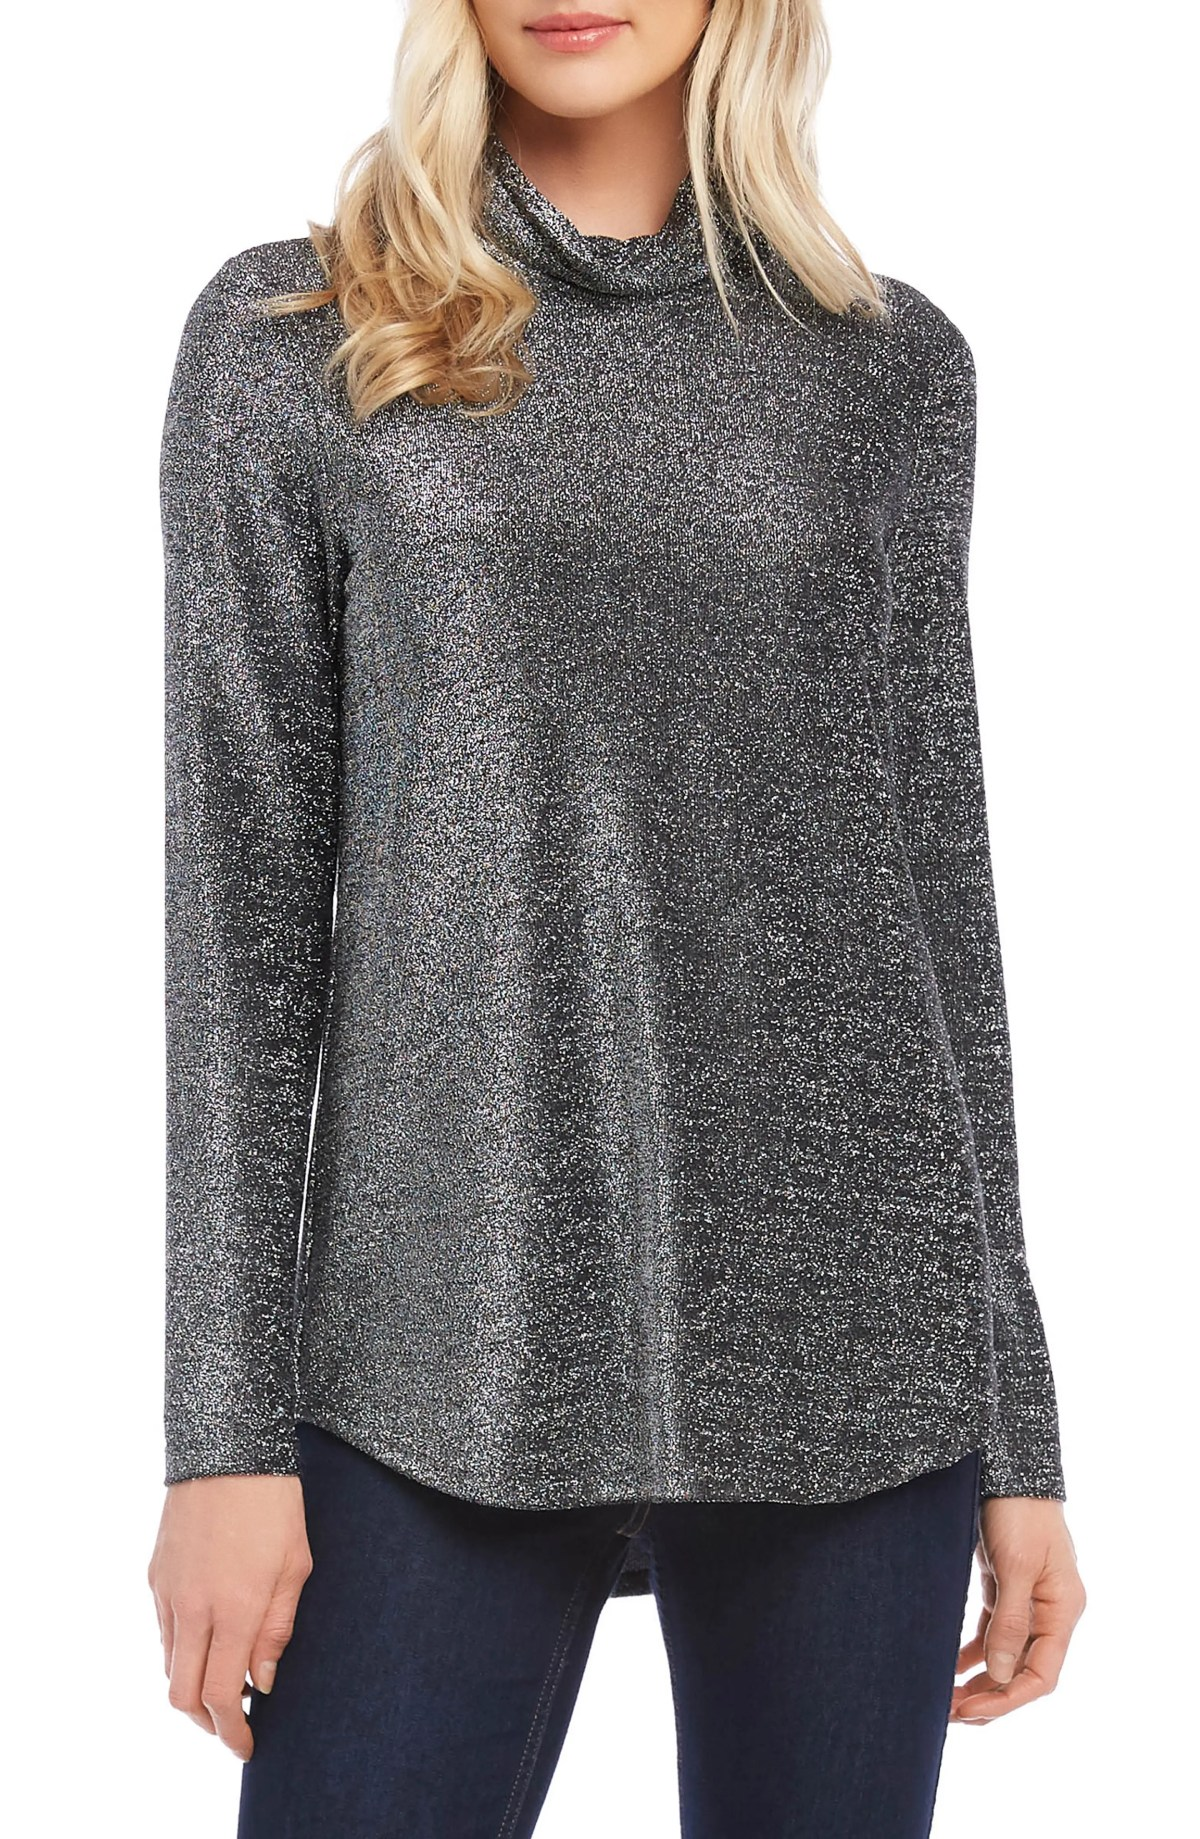 KAREN KANE Shimmer Long Sleeve Turtleneck, Main, color, BLACK